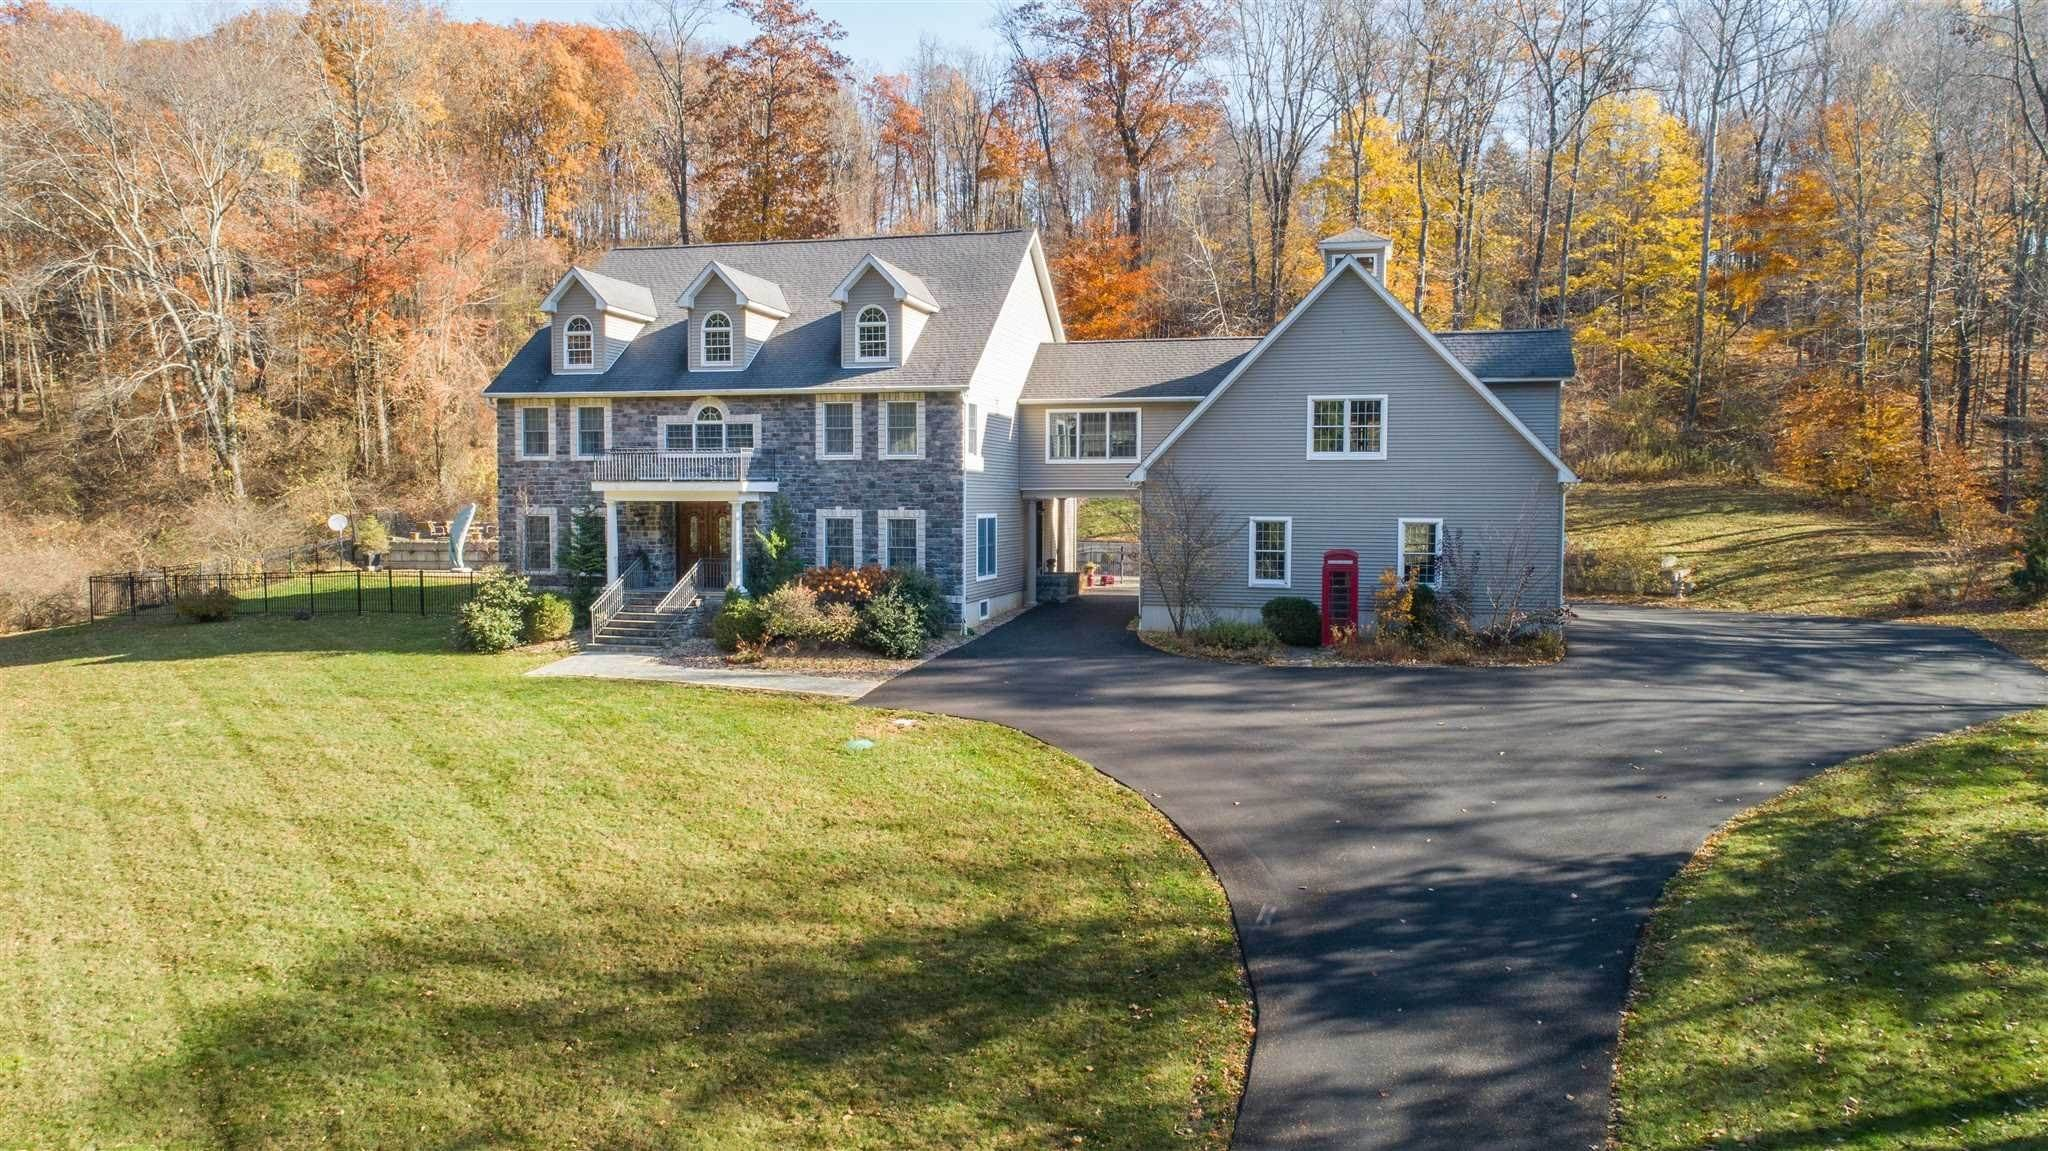 Single Family Homes for Sale at 11 STRAWBERRY HILL Road Pawling, New York 12564 United States